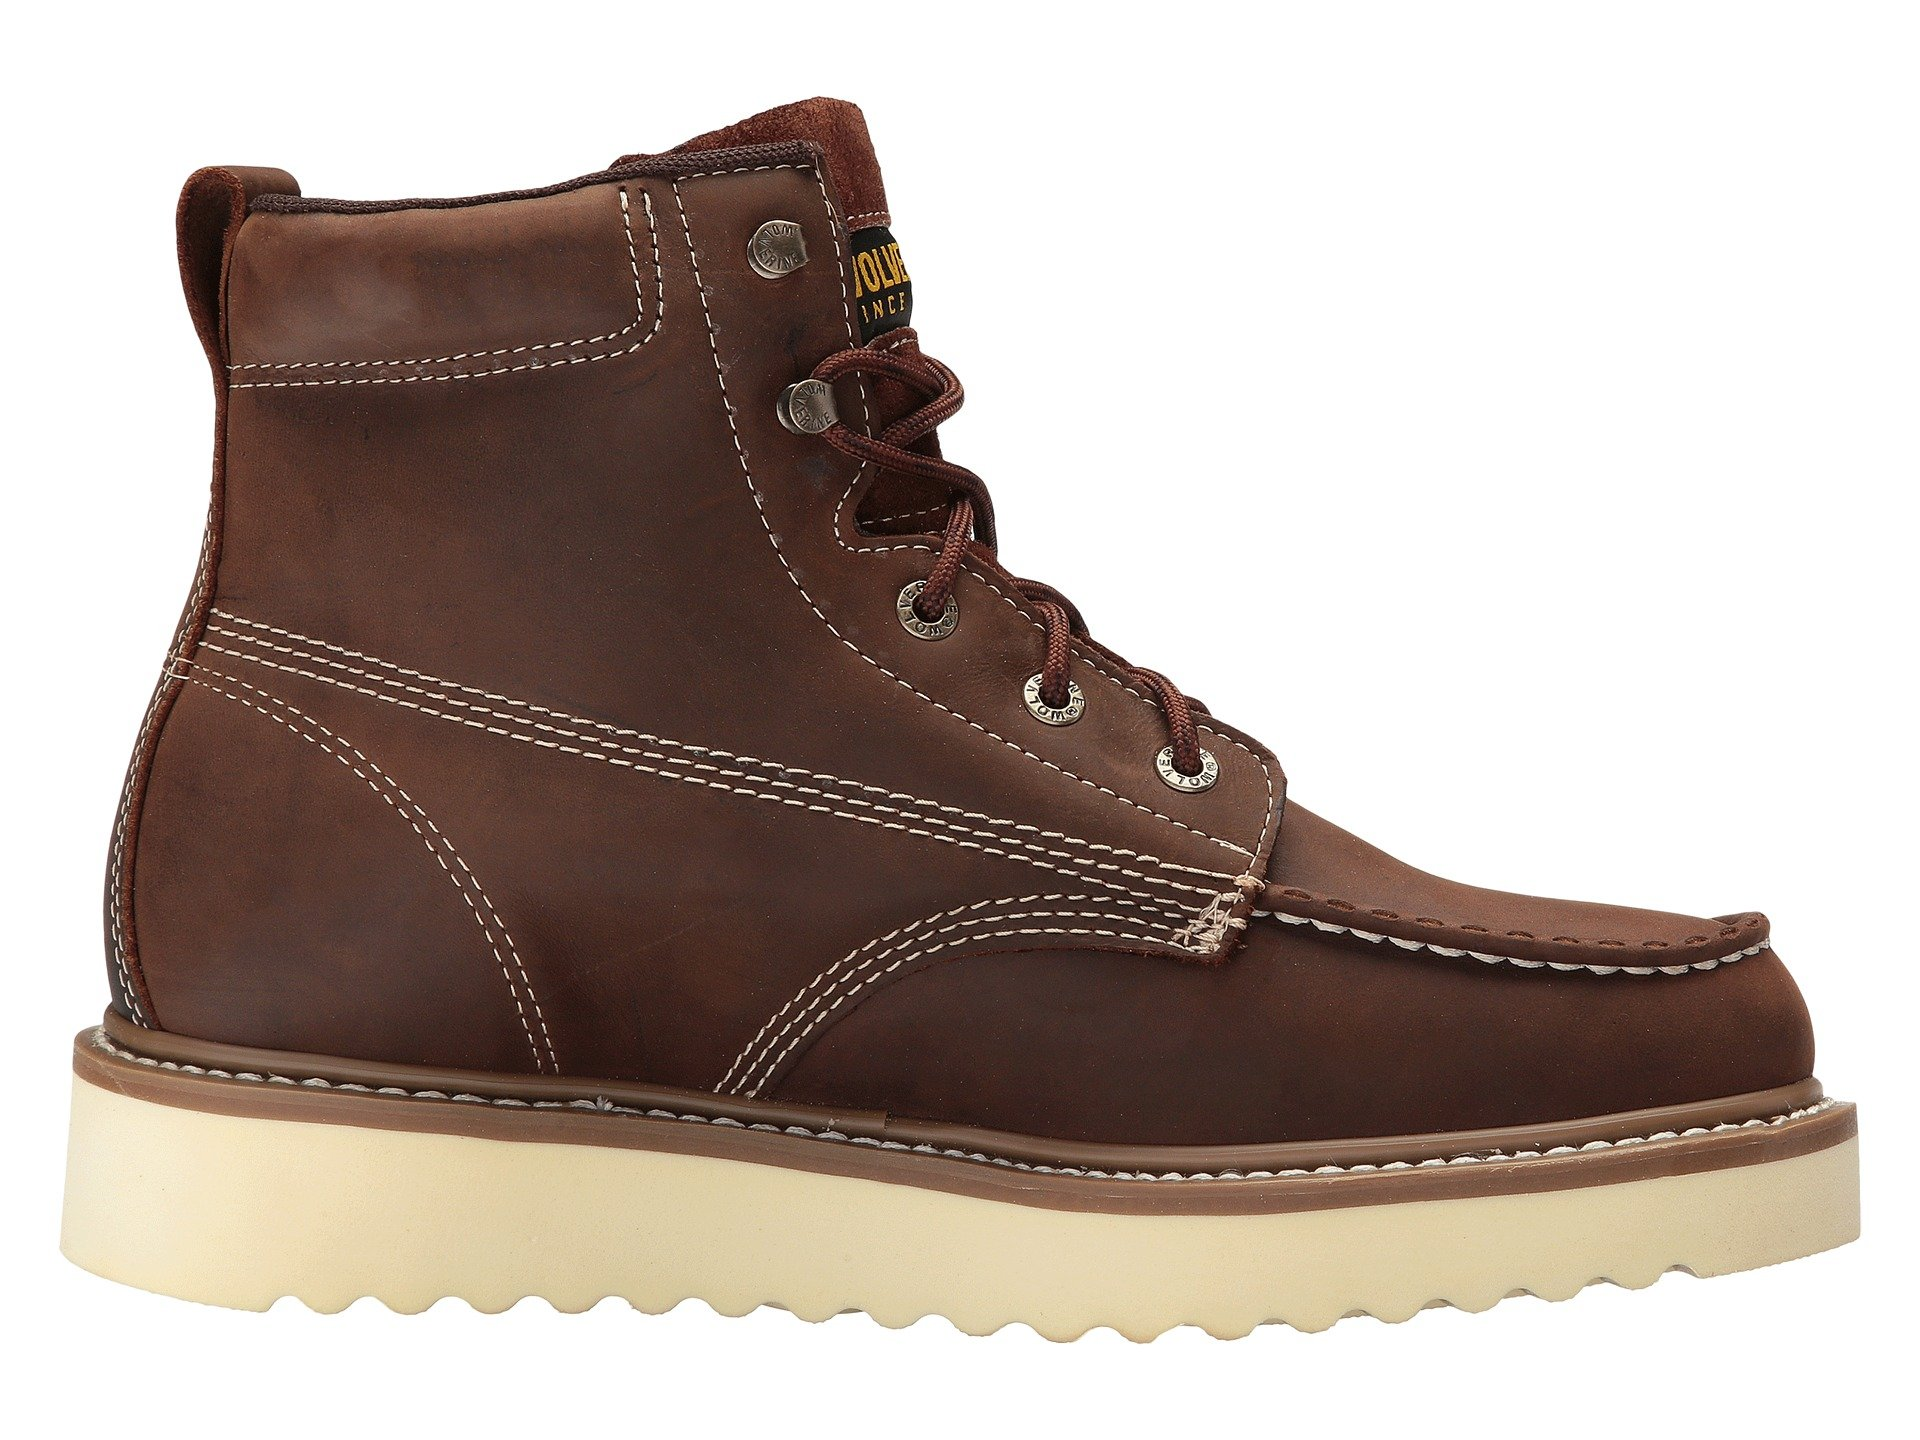 Wolverine Loader 6 Quot Boot At Zappos Com